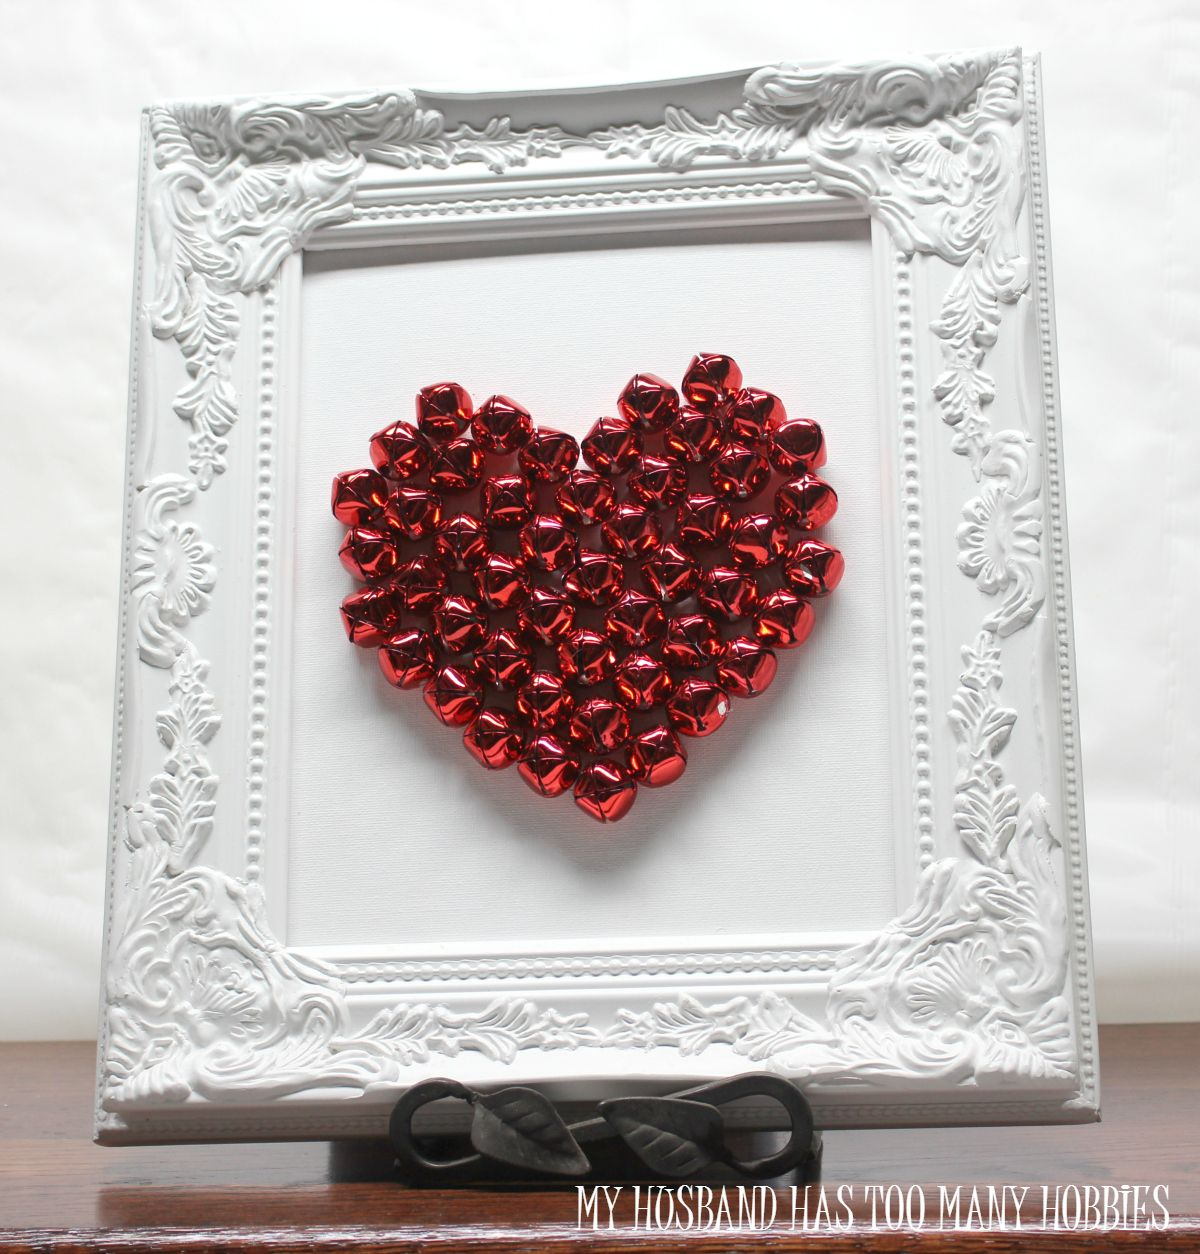 Try something unique for Valentine's Day this year with this vibrant jingle bell valentine art piece.  Easy to make and one you'll love to display.